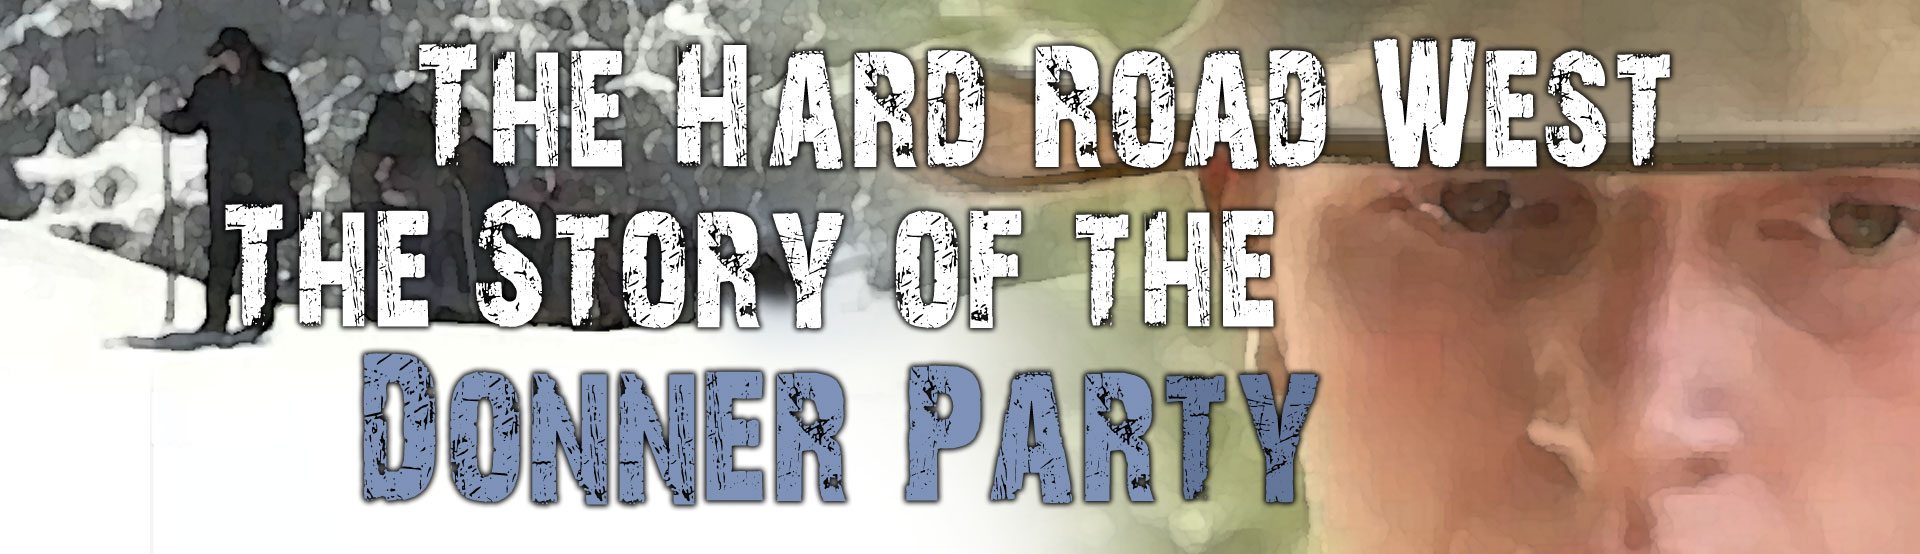 The Hard Road West: The Story of the Donner Party